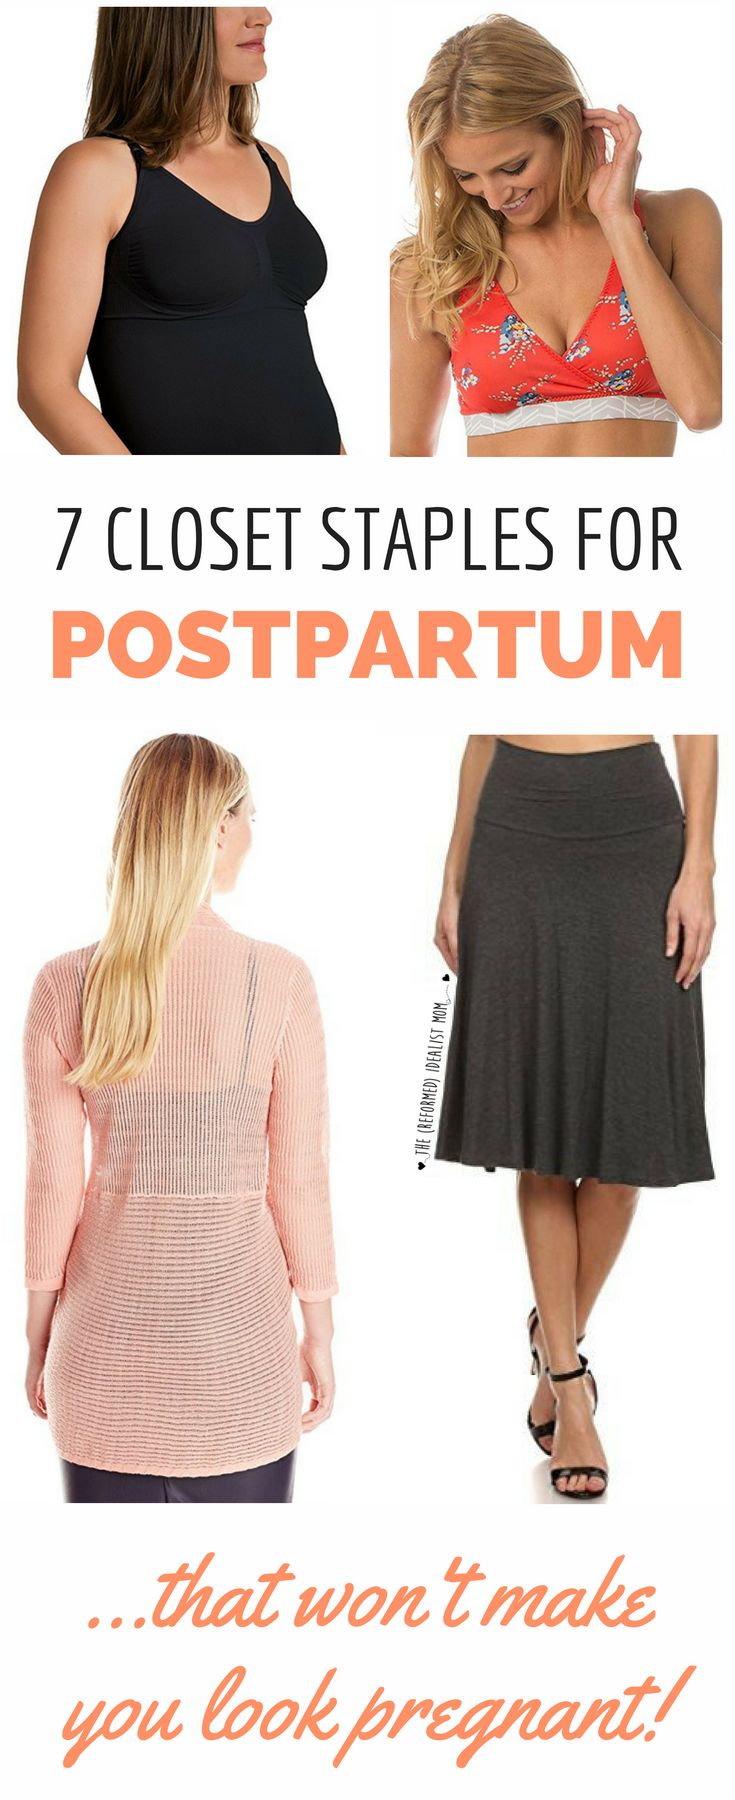 Every postpartum new mom needs this list! All the clothes you need in your closet post-baby. What to wear, what not to wear, and how you can combine fashion pieces for a style that doesn't make you look pregnant.